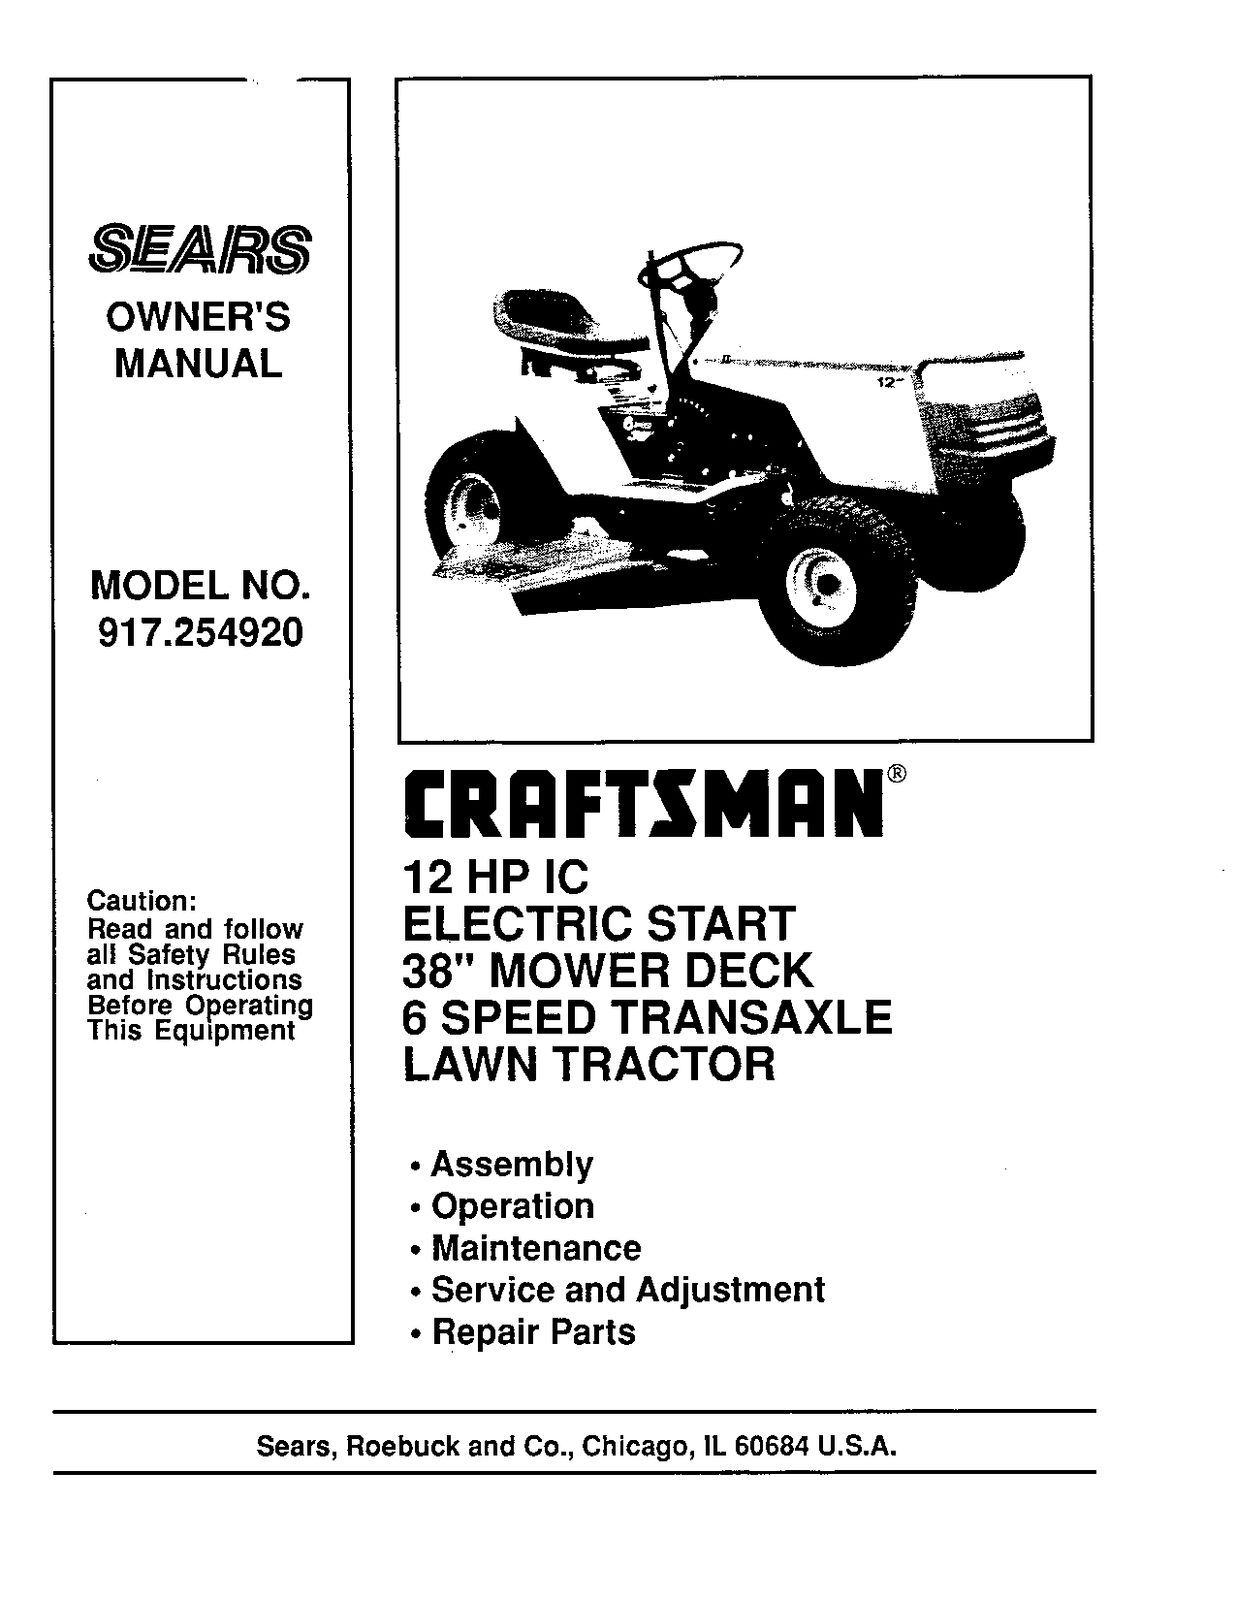 Craftsman  Lawn Tractor Operators Manual 917.254920